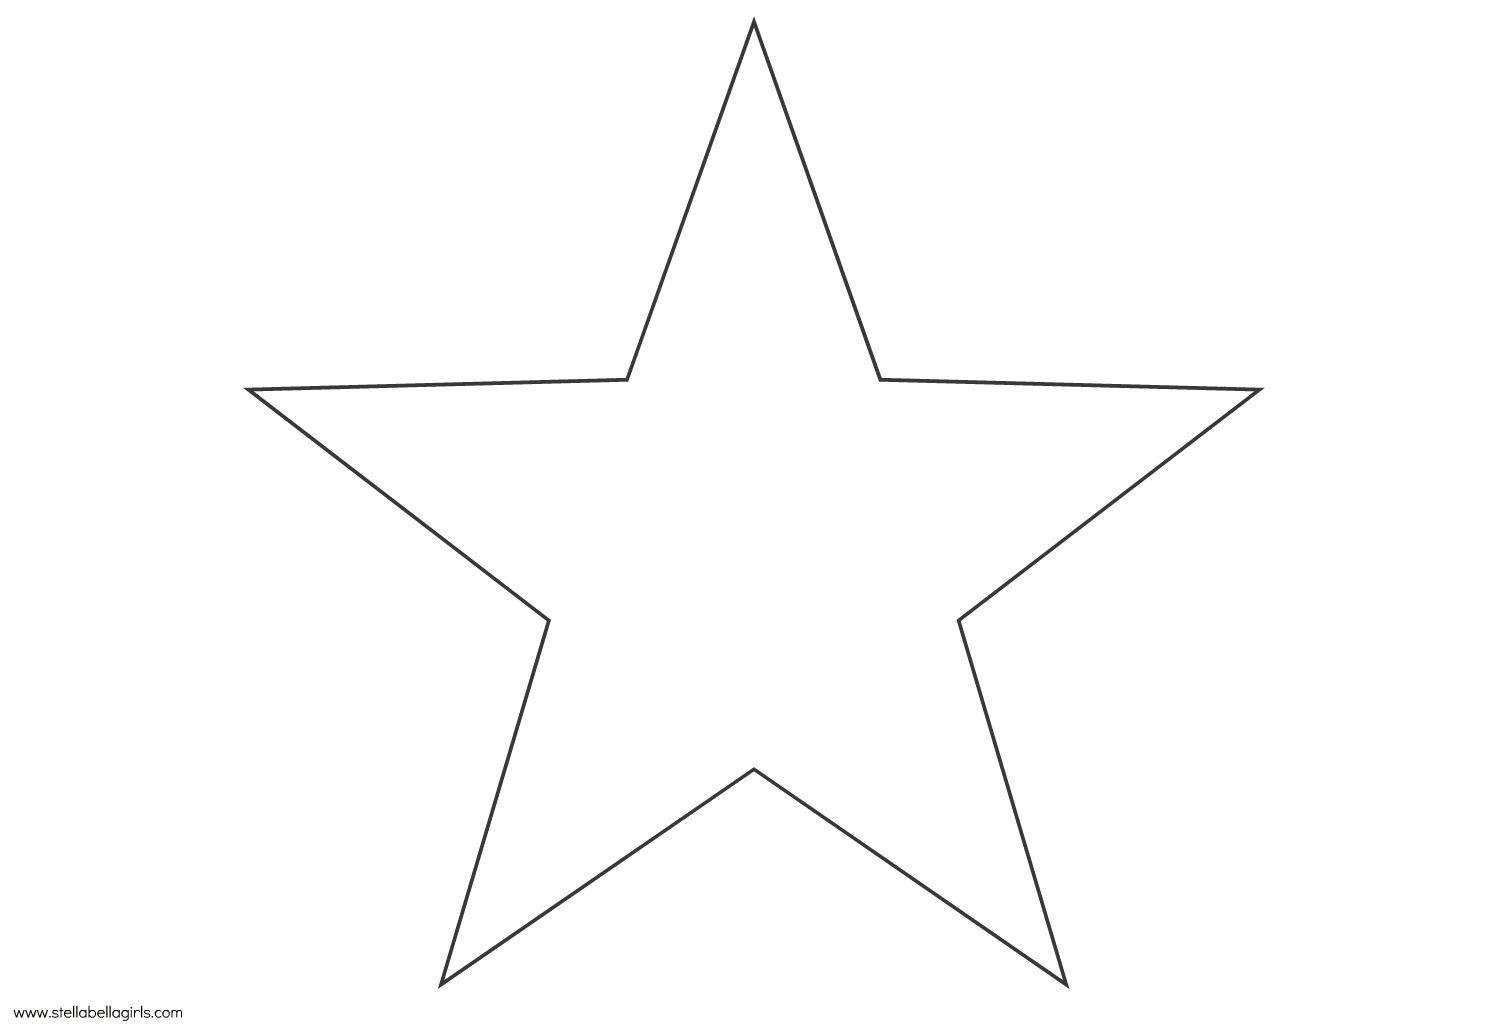 6 Images of Star Template Stencil Printable